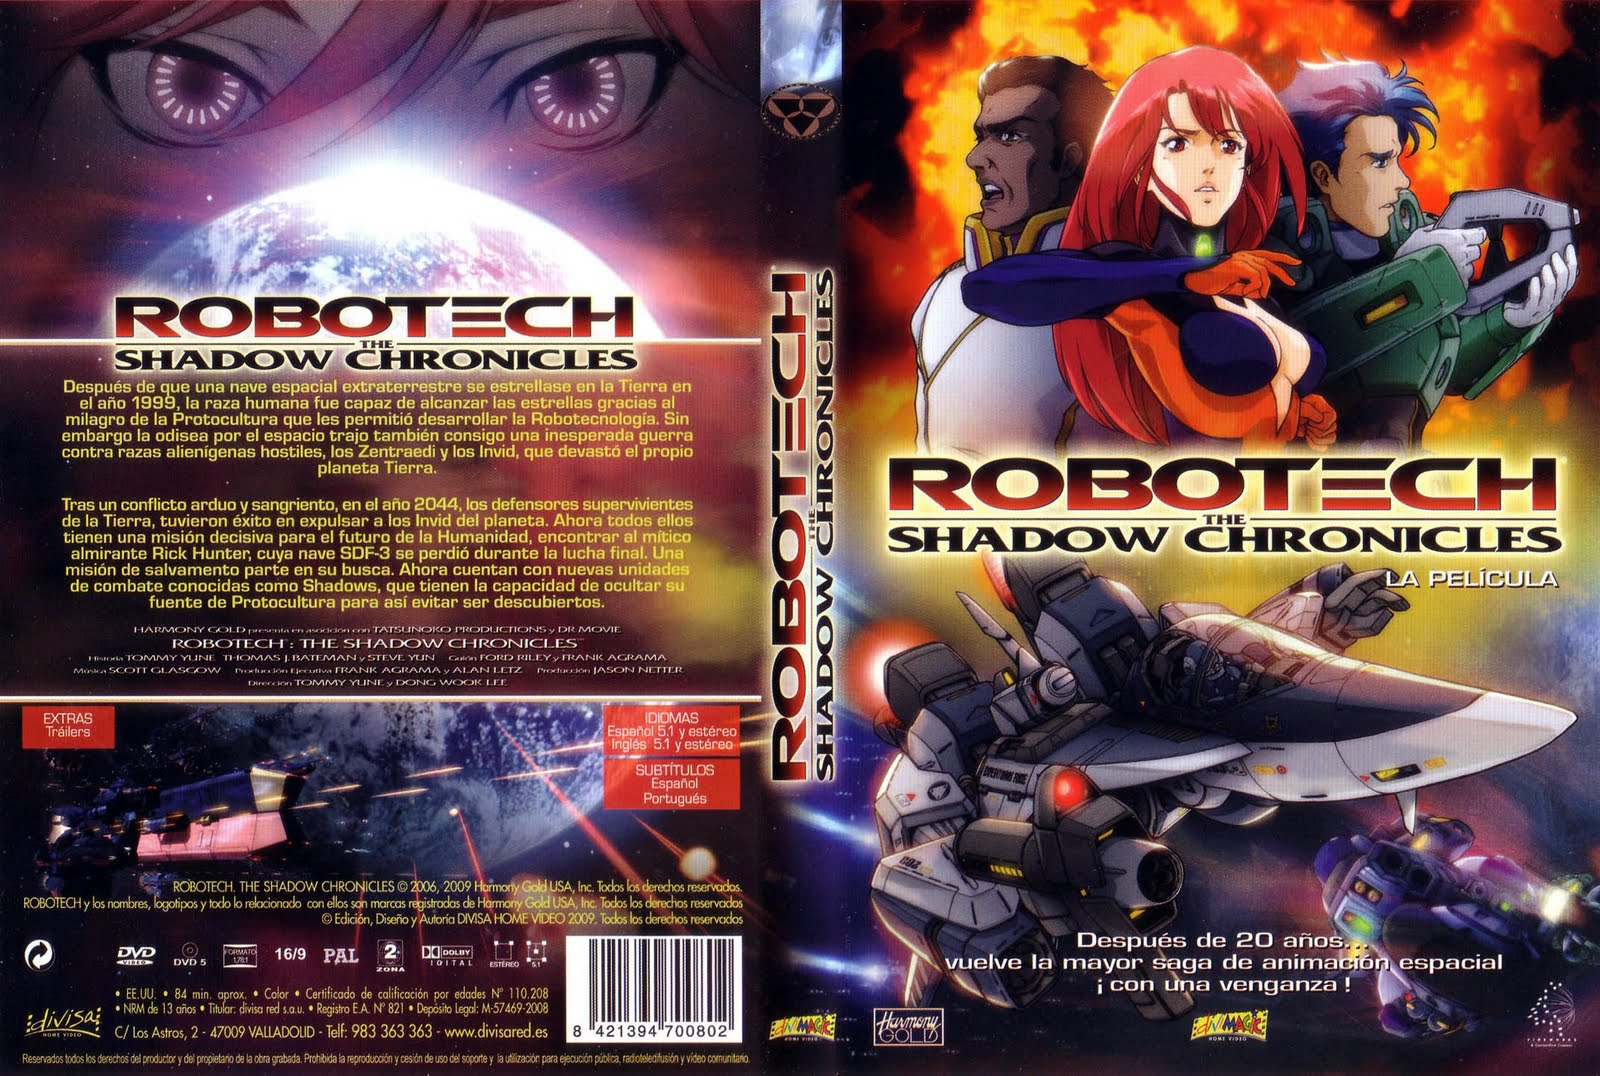 Robotech The Shadow Chronicles The Movie Robotech Shadow Chronicles Characters